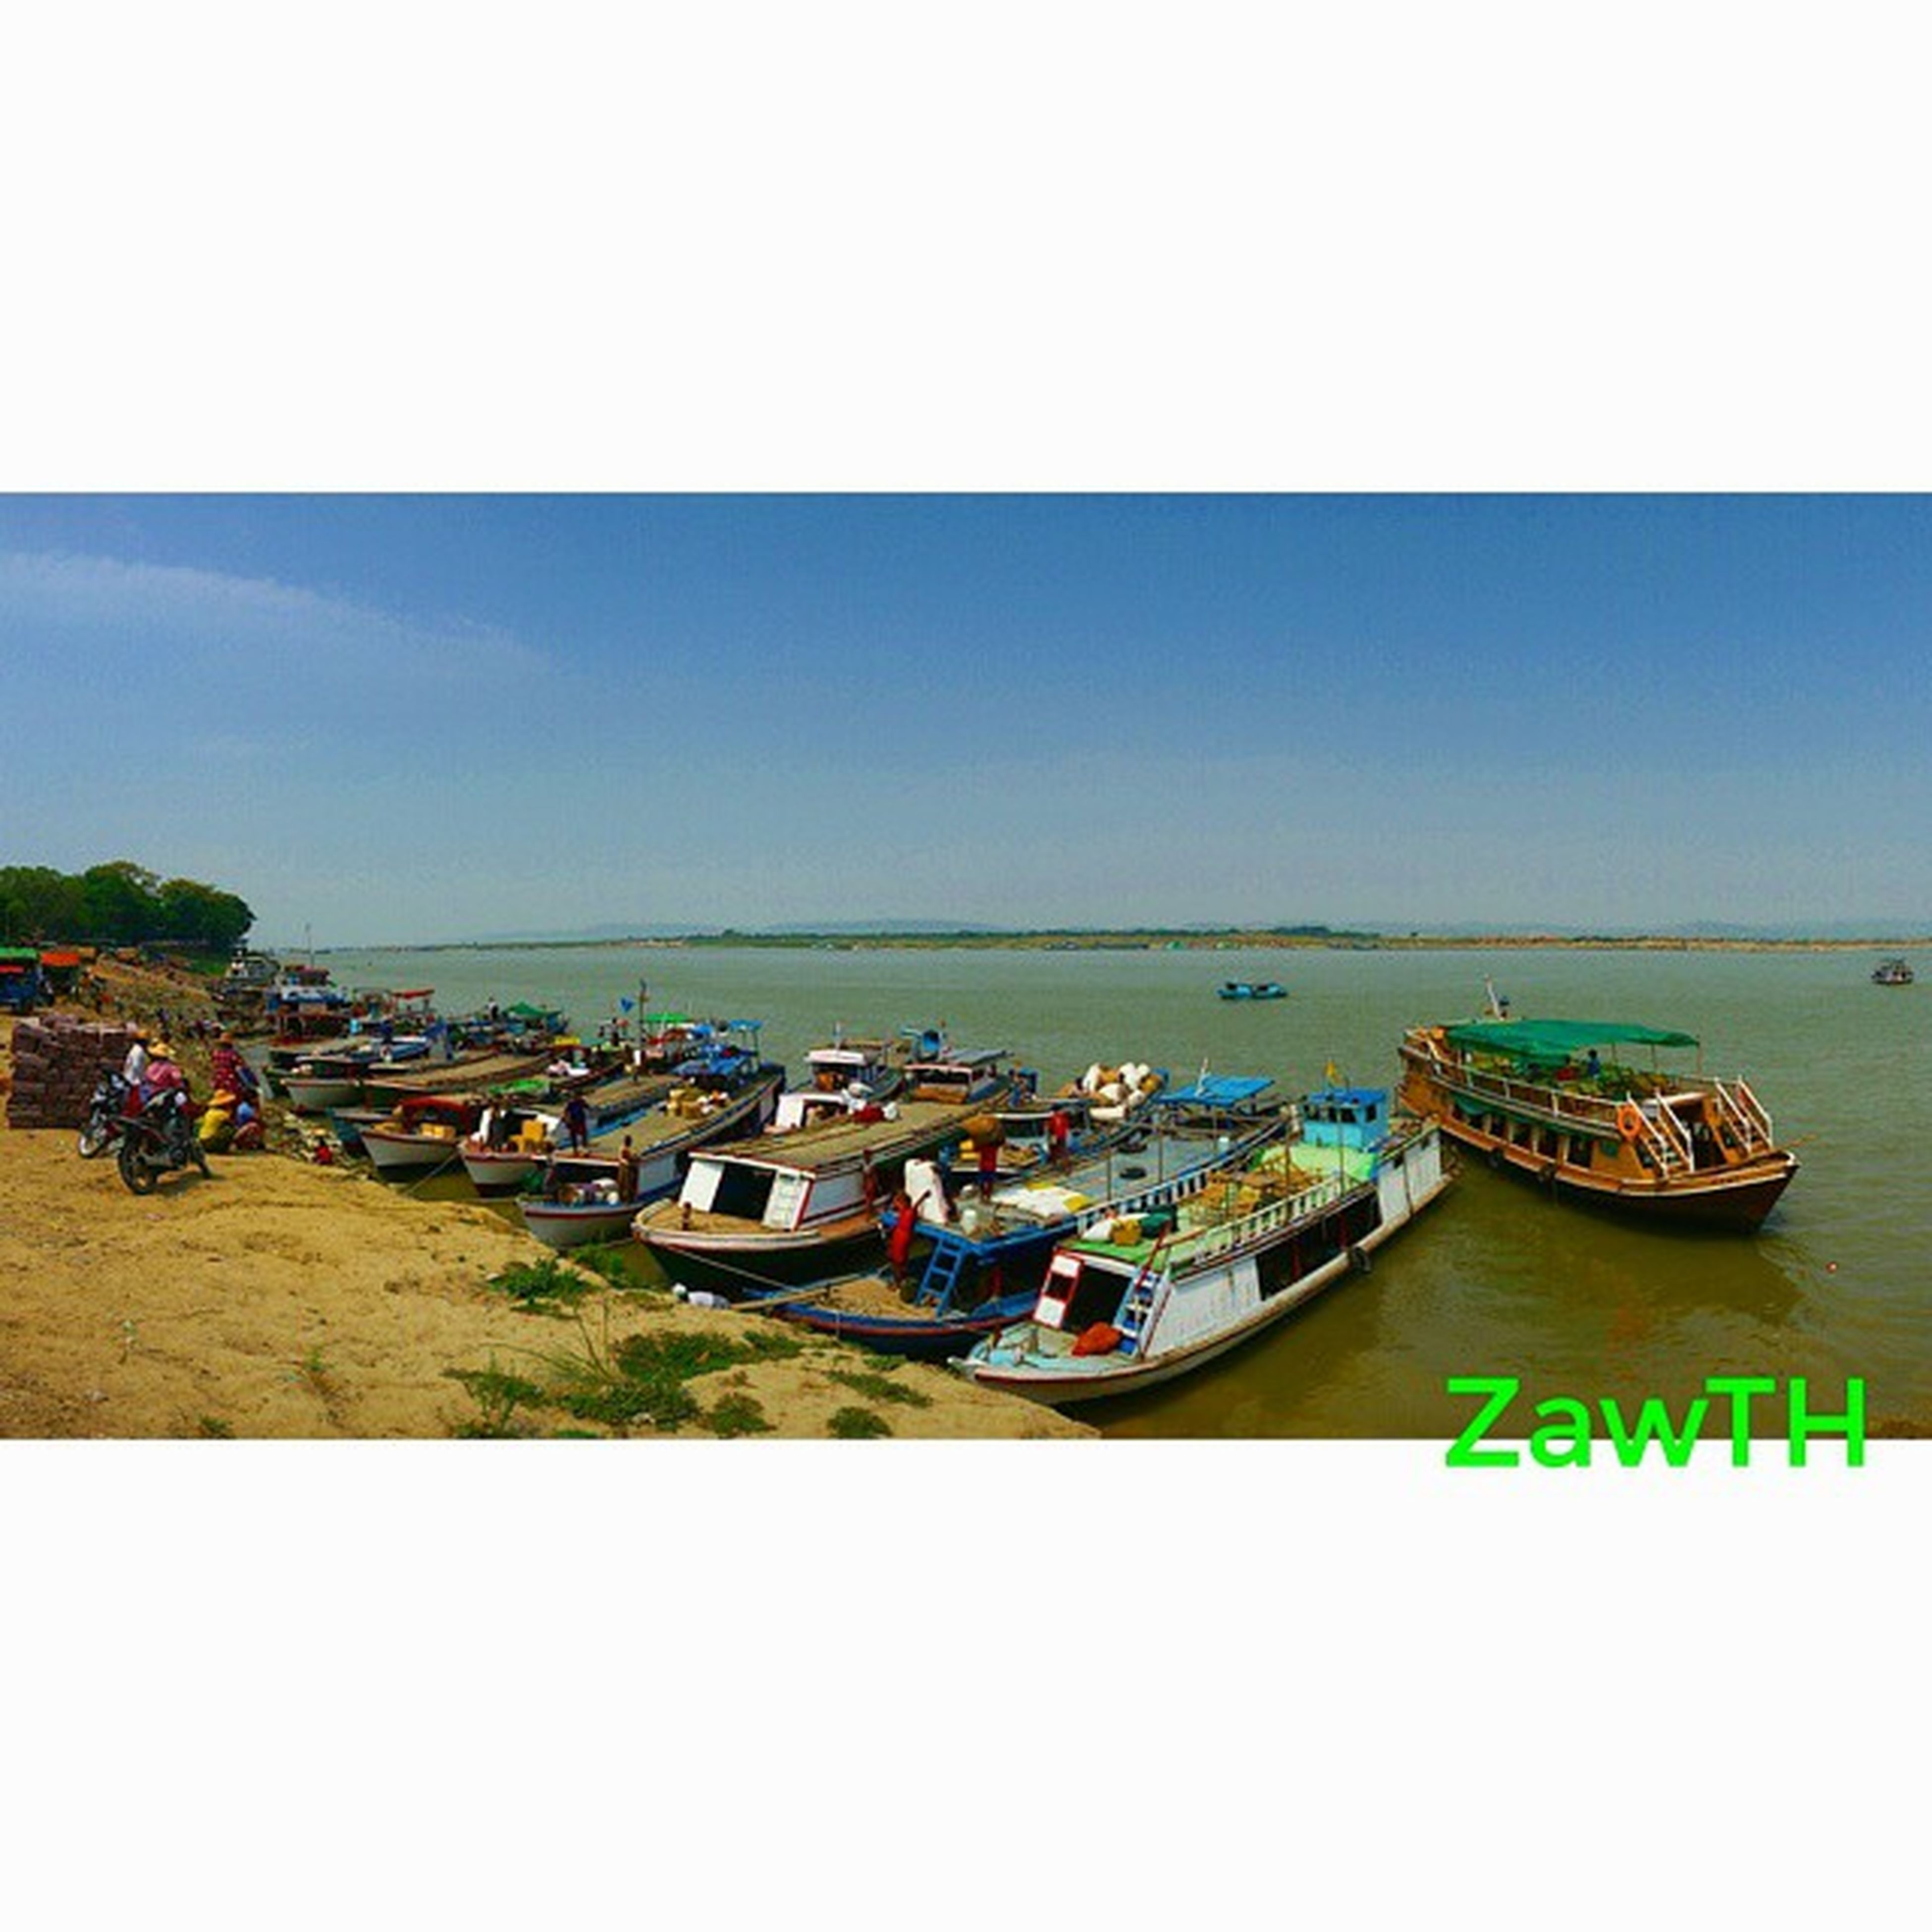 Boats at the bank. Ayeyarwaddy Irrawaddy River Mandalay Myanmar Burma Exploremyanmar Goldenland Igersmyanmar Igersmandalay Vscomyanmar Myanmarphotos Ship Bank Riverbank Igers Ig_pic GalaxyGrand2 Picofftheday Nothingordinary_ Zawth Asean Aseantravel Aseanchannel